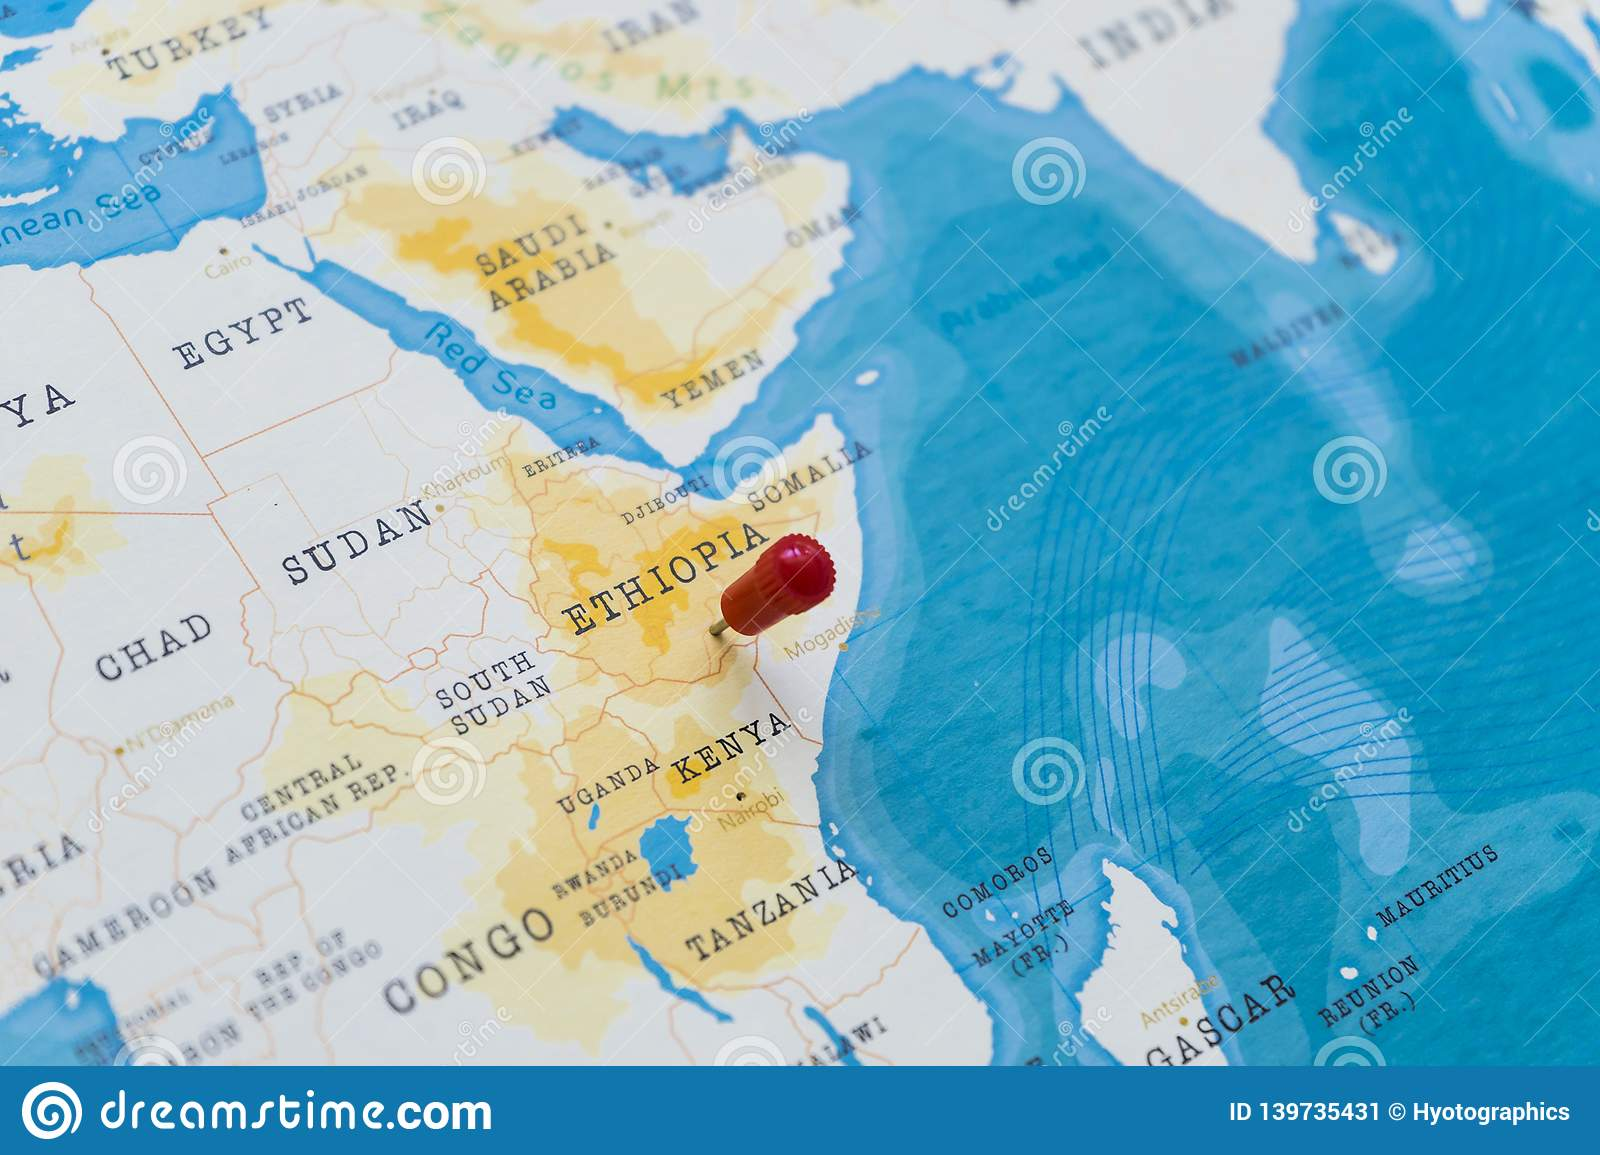 Picture of: A Pin On Ethiopia In The World Map Stock Image Image Of Itinerary Atlas 139735431